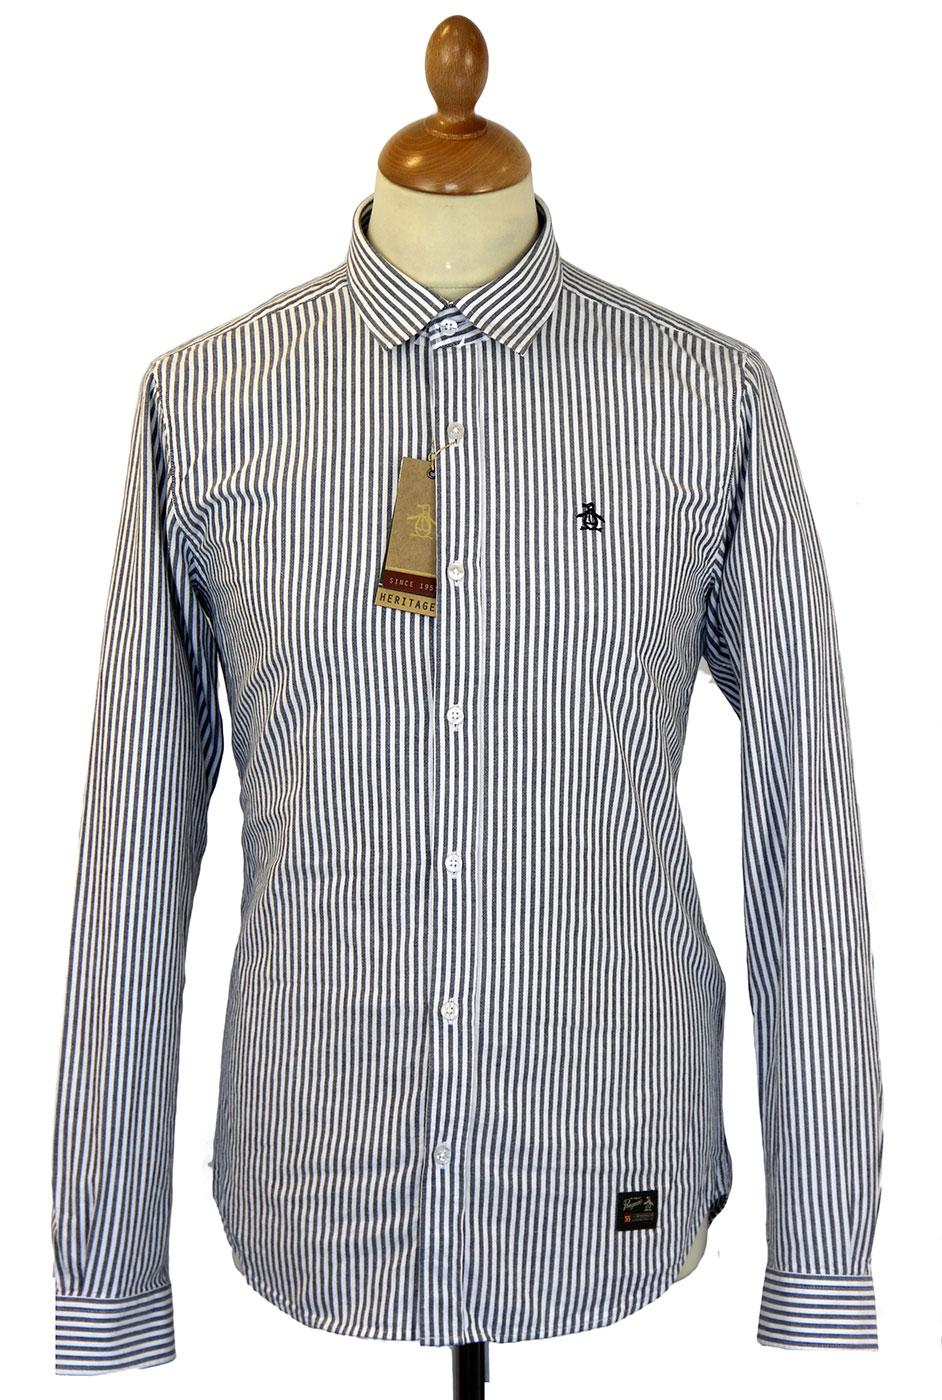 Candy Stripe ORIGINAL PENGUIN Retro Mod Shirt (DB)